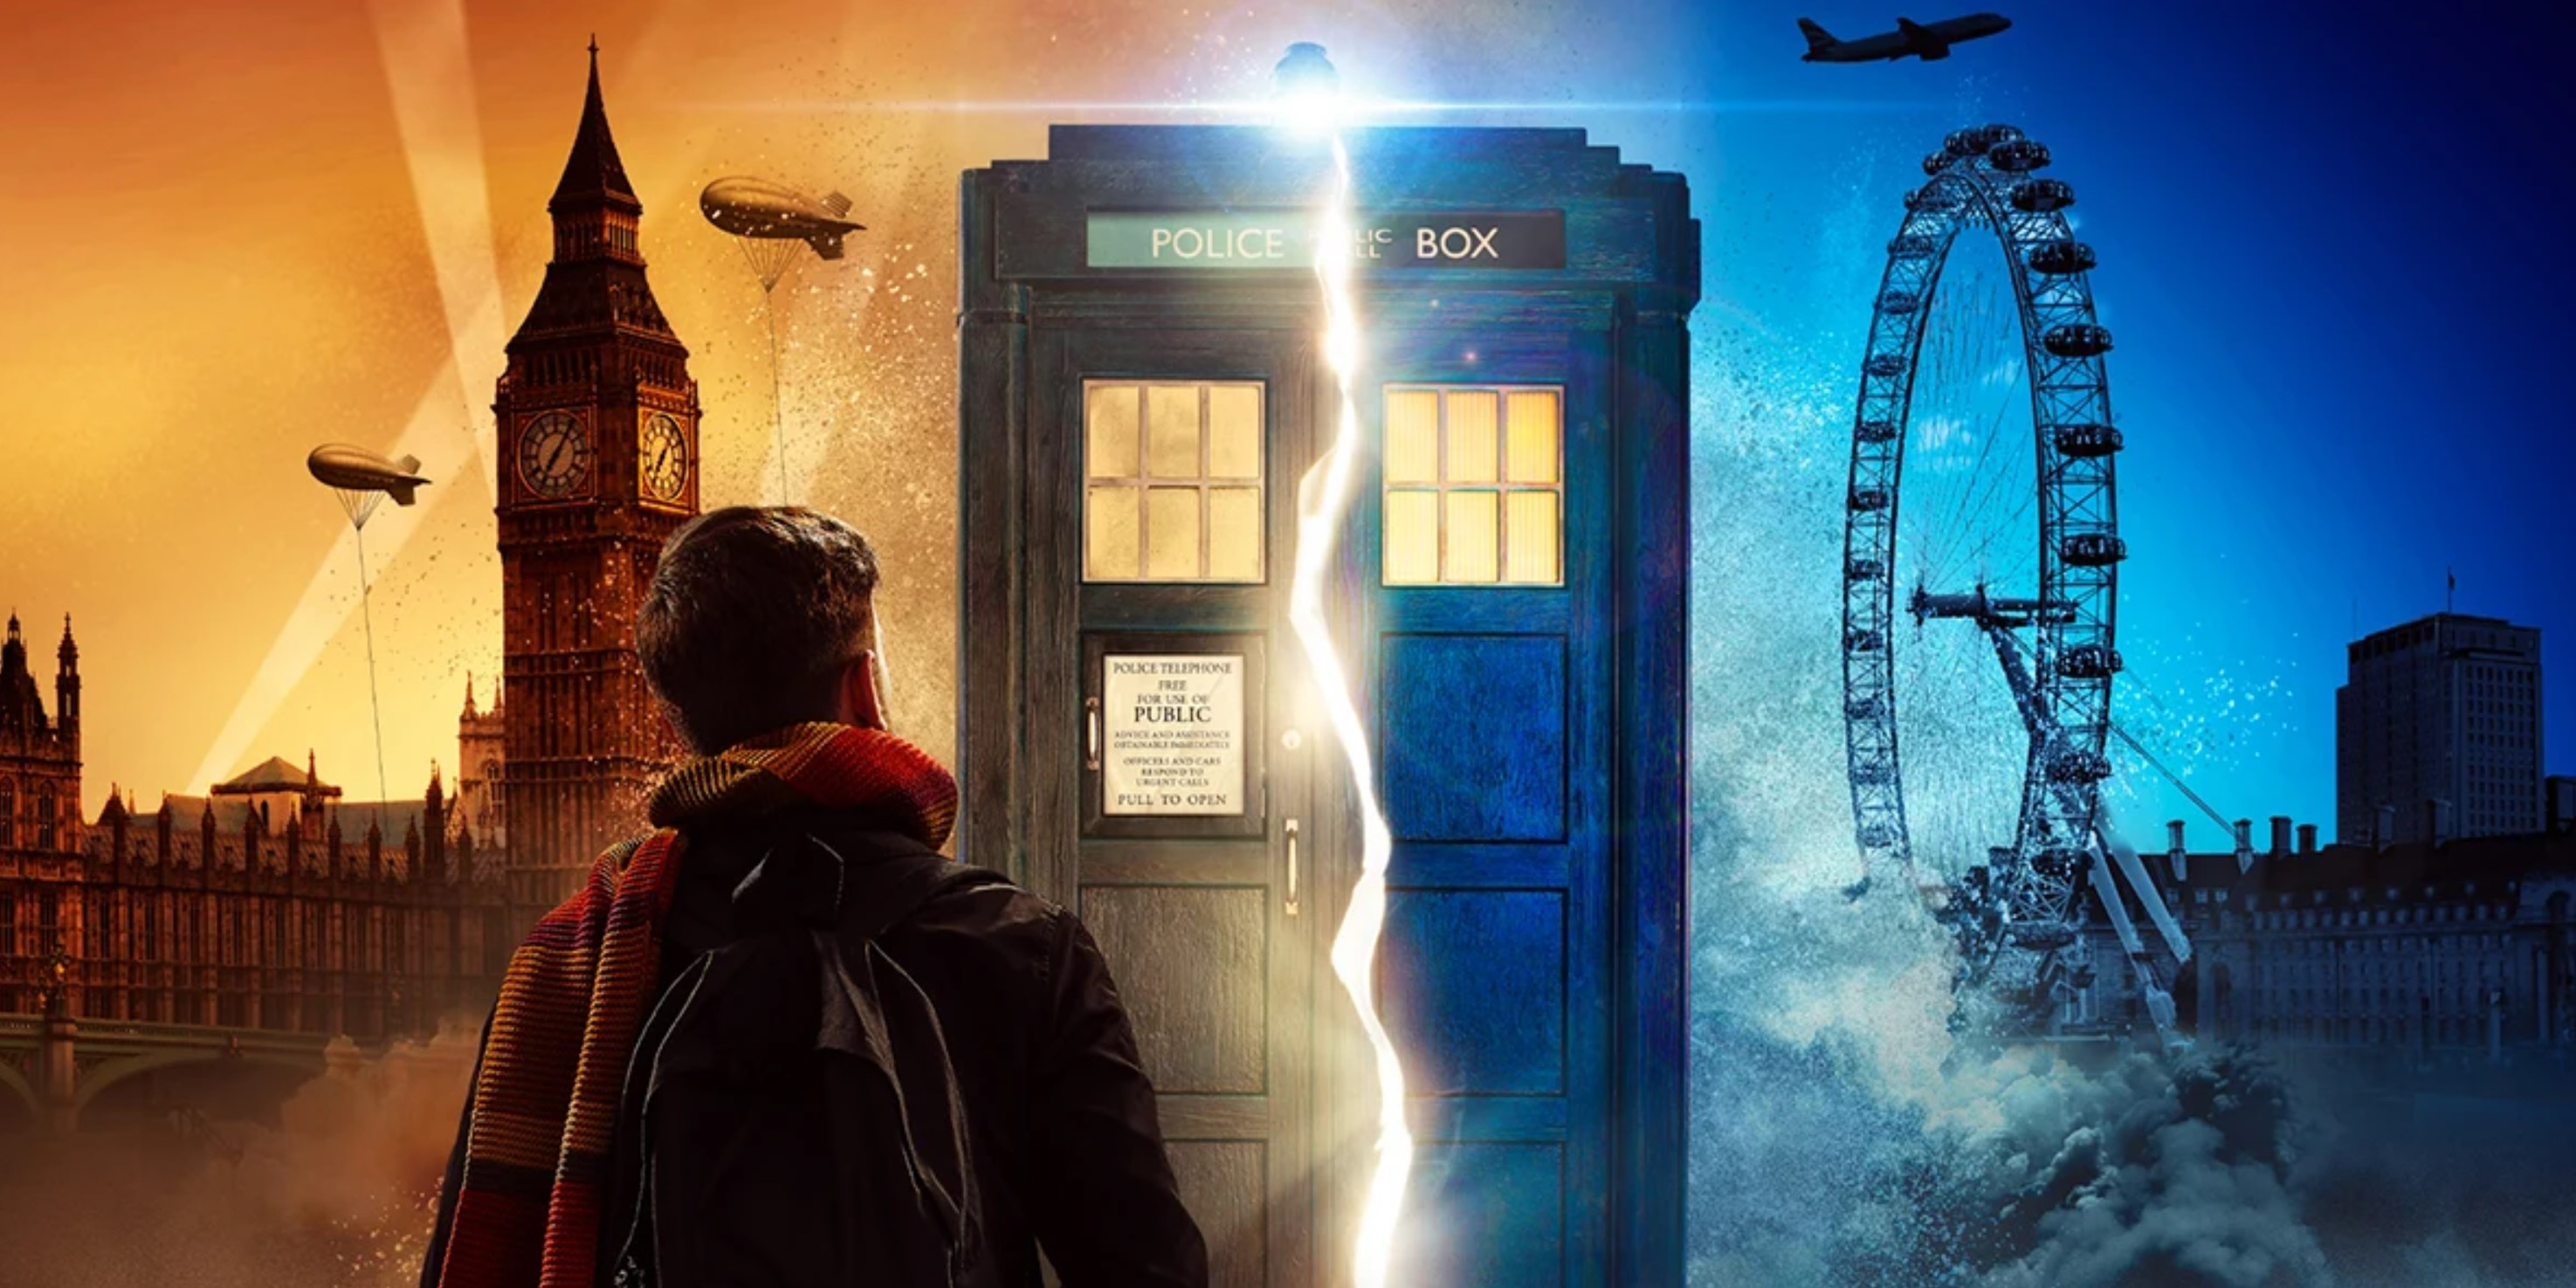 Doctor Who Gets Immersive Theater Experience 'Time Fracture'